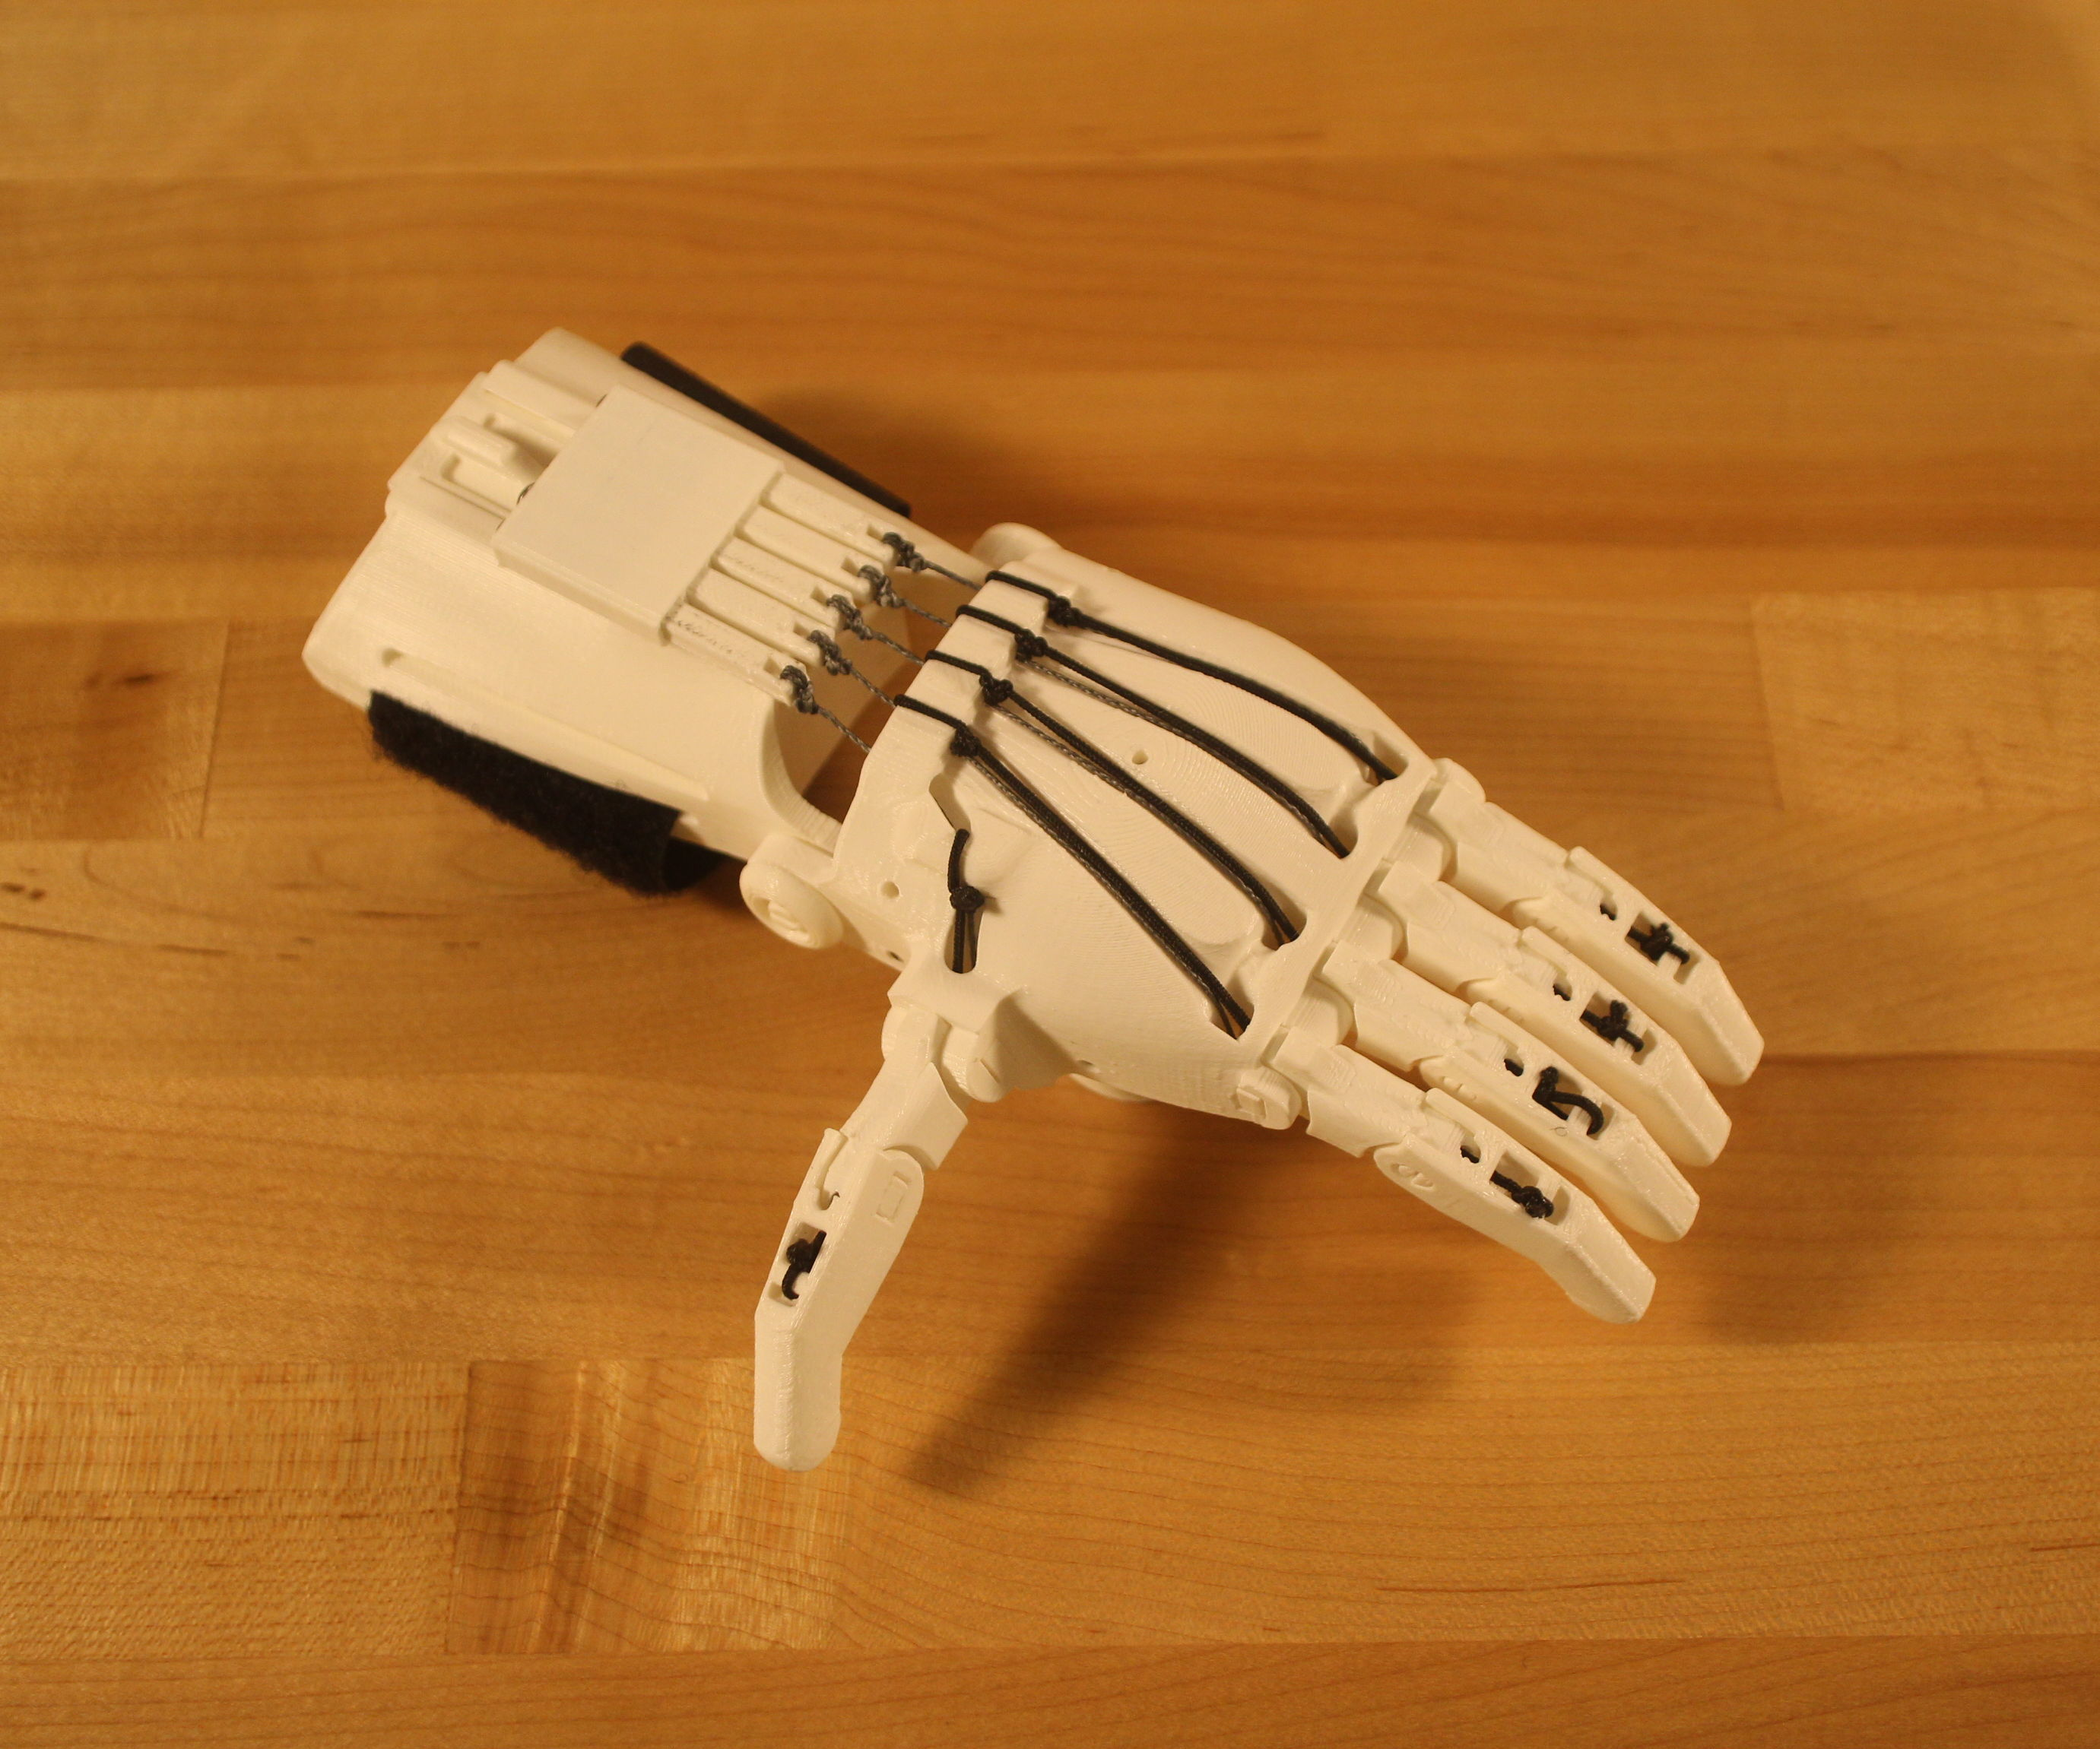 Assembly of e-NABLE's Raptor Reloaded Hand